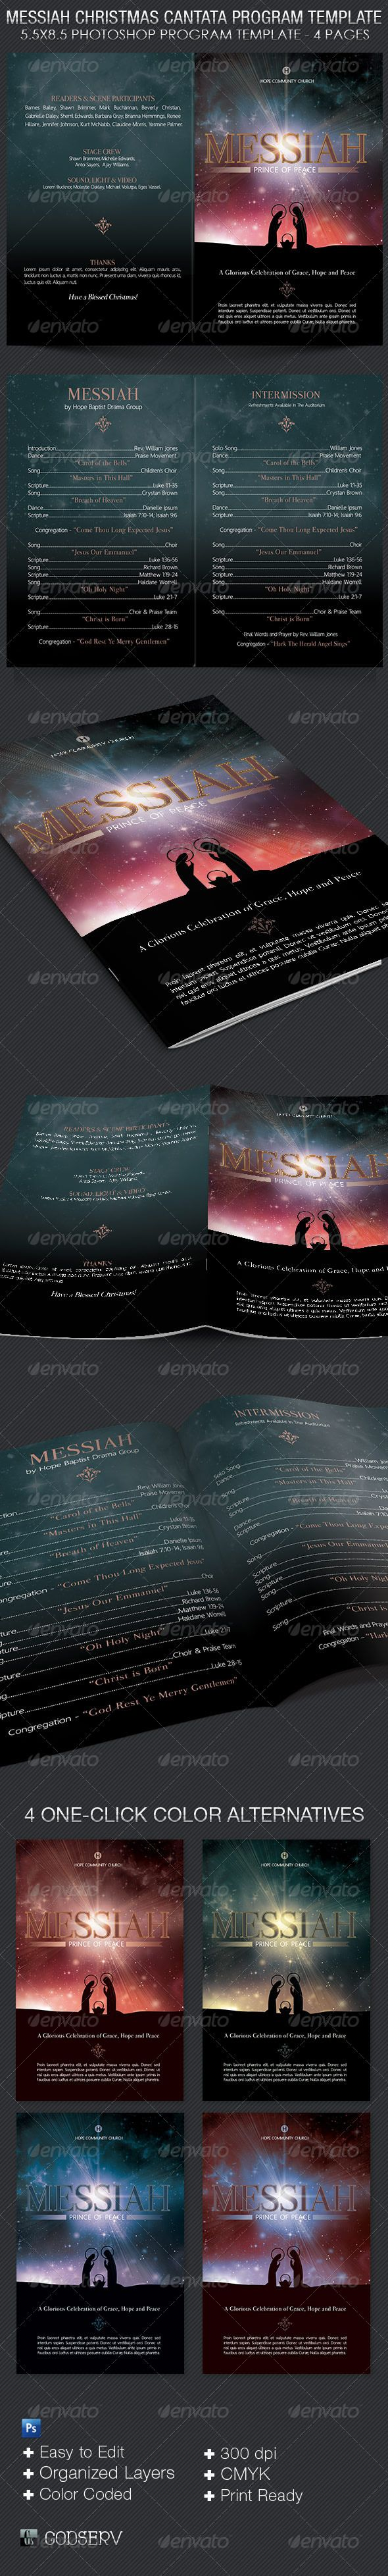 best images about christmas programs for church messiah christmas cantata program template